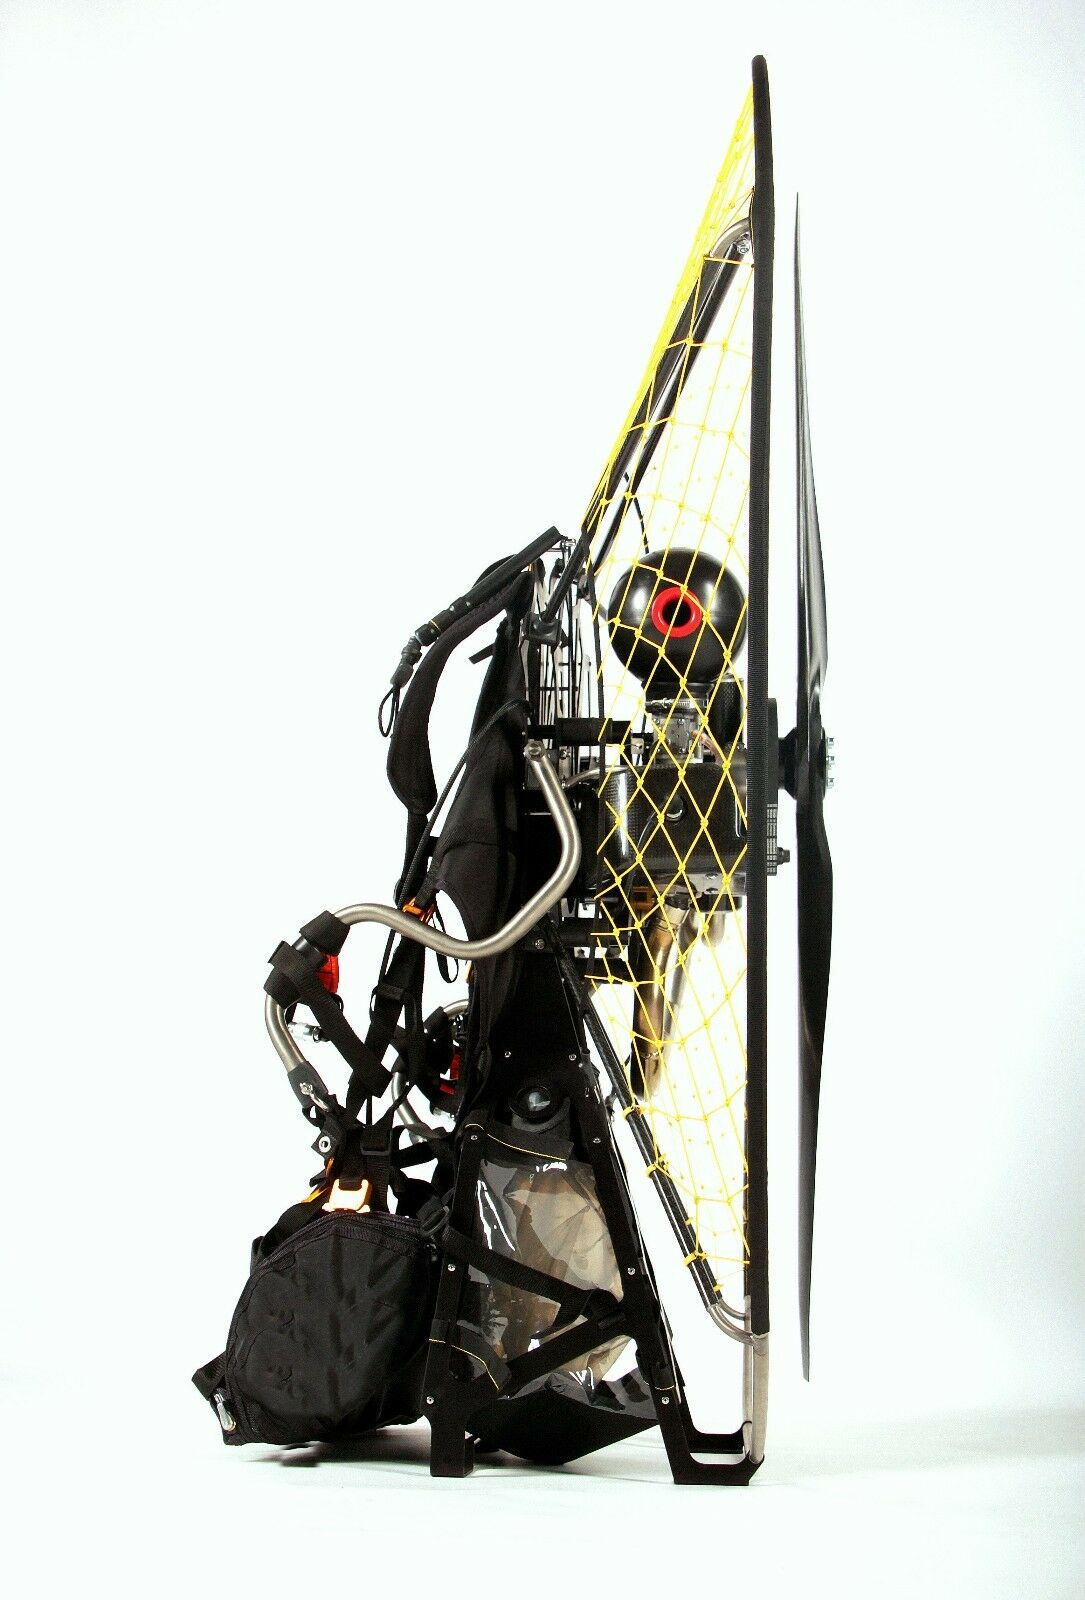 EOS 100 on titanium-carbon frame-lightest paramotor on the market 18 kG-39Lb